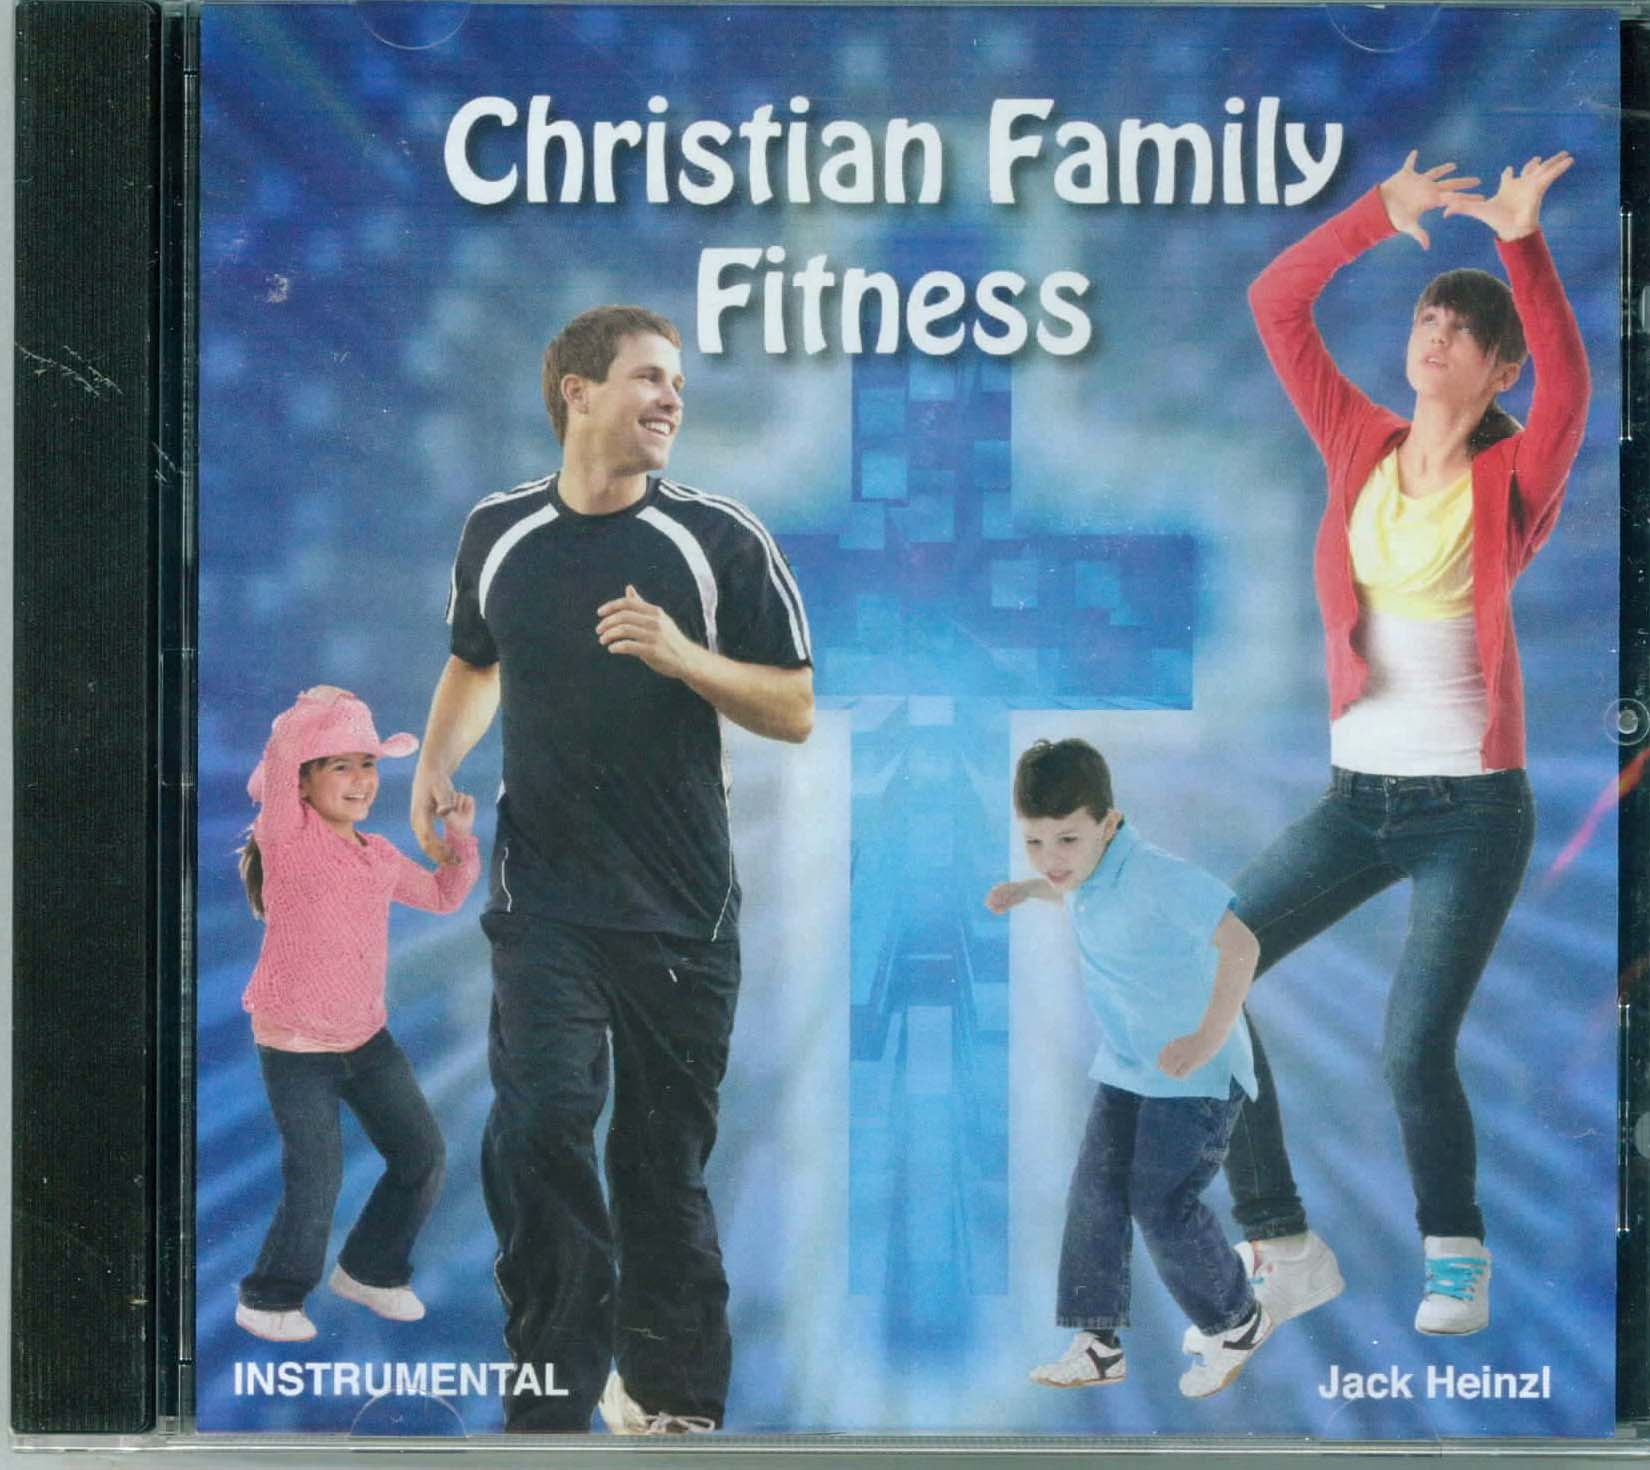 Christian Family Fitness - CD by Jack Heinzl 285-JHZ-7499